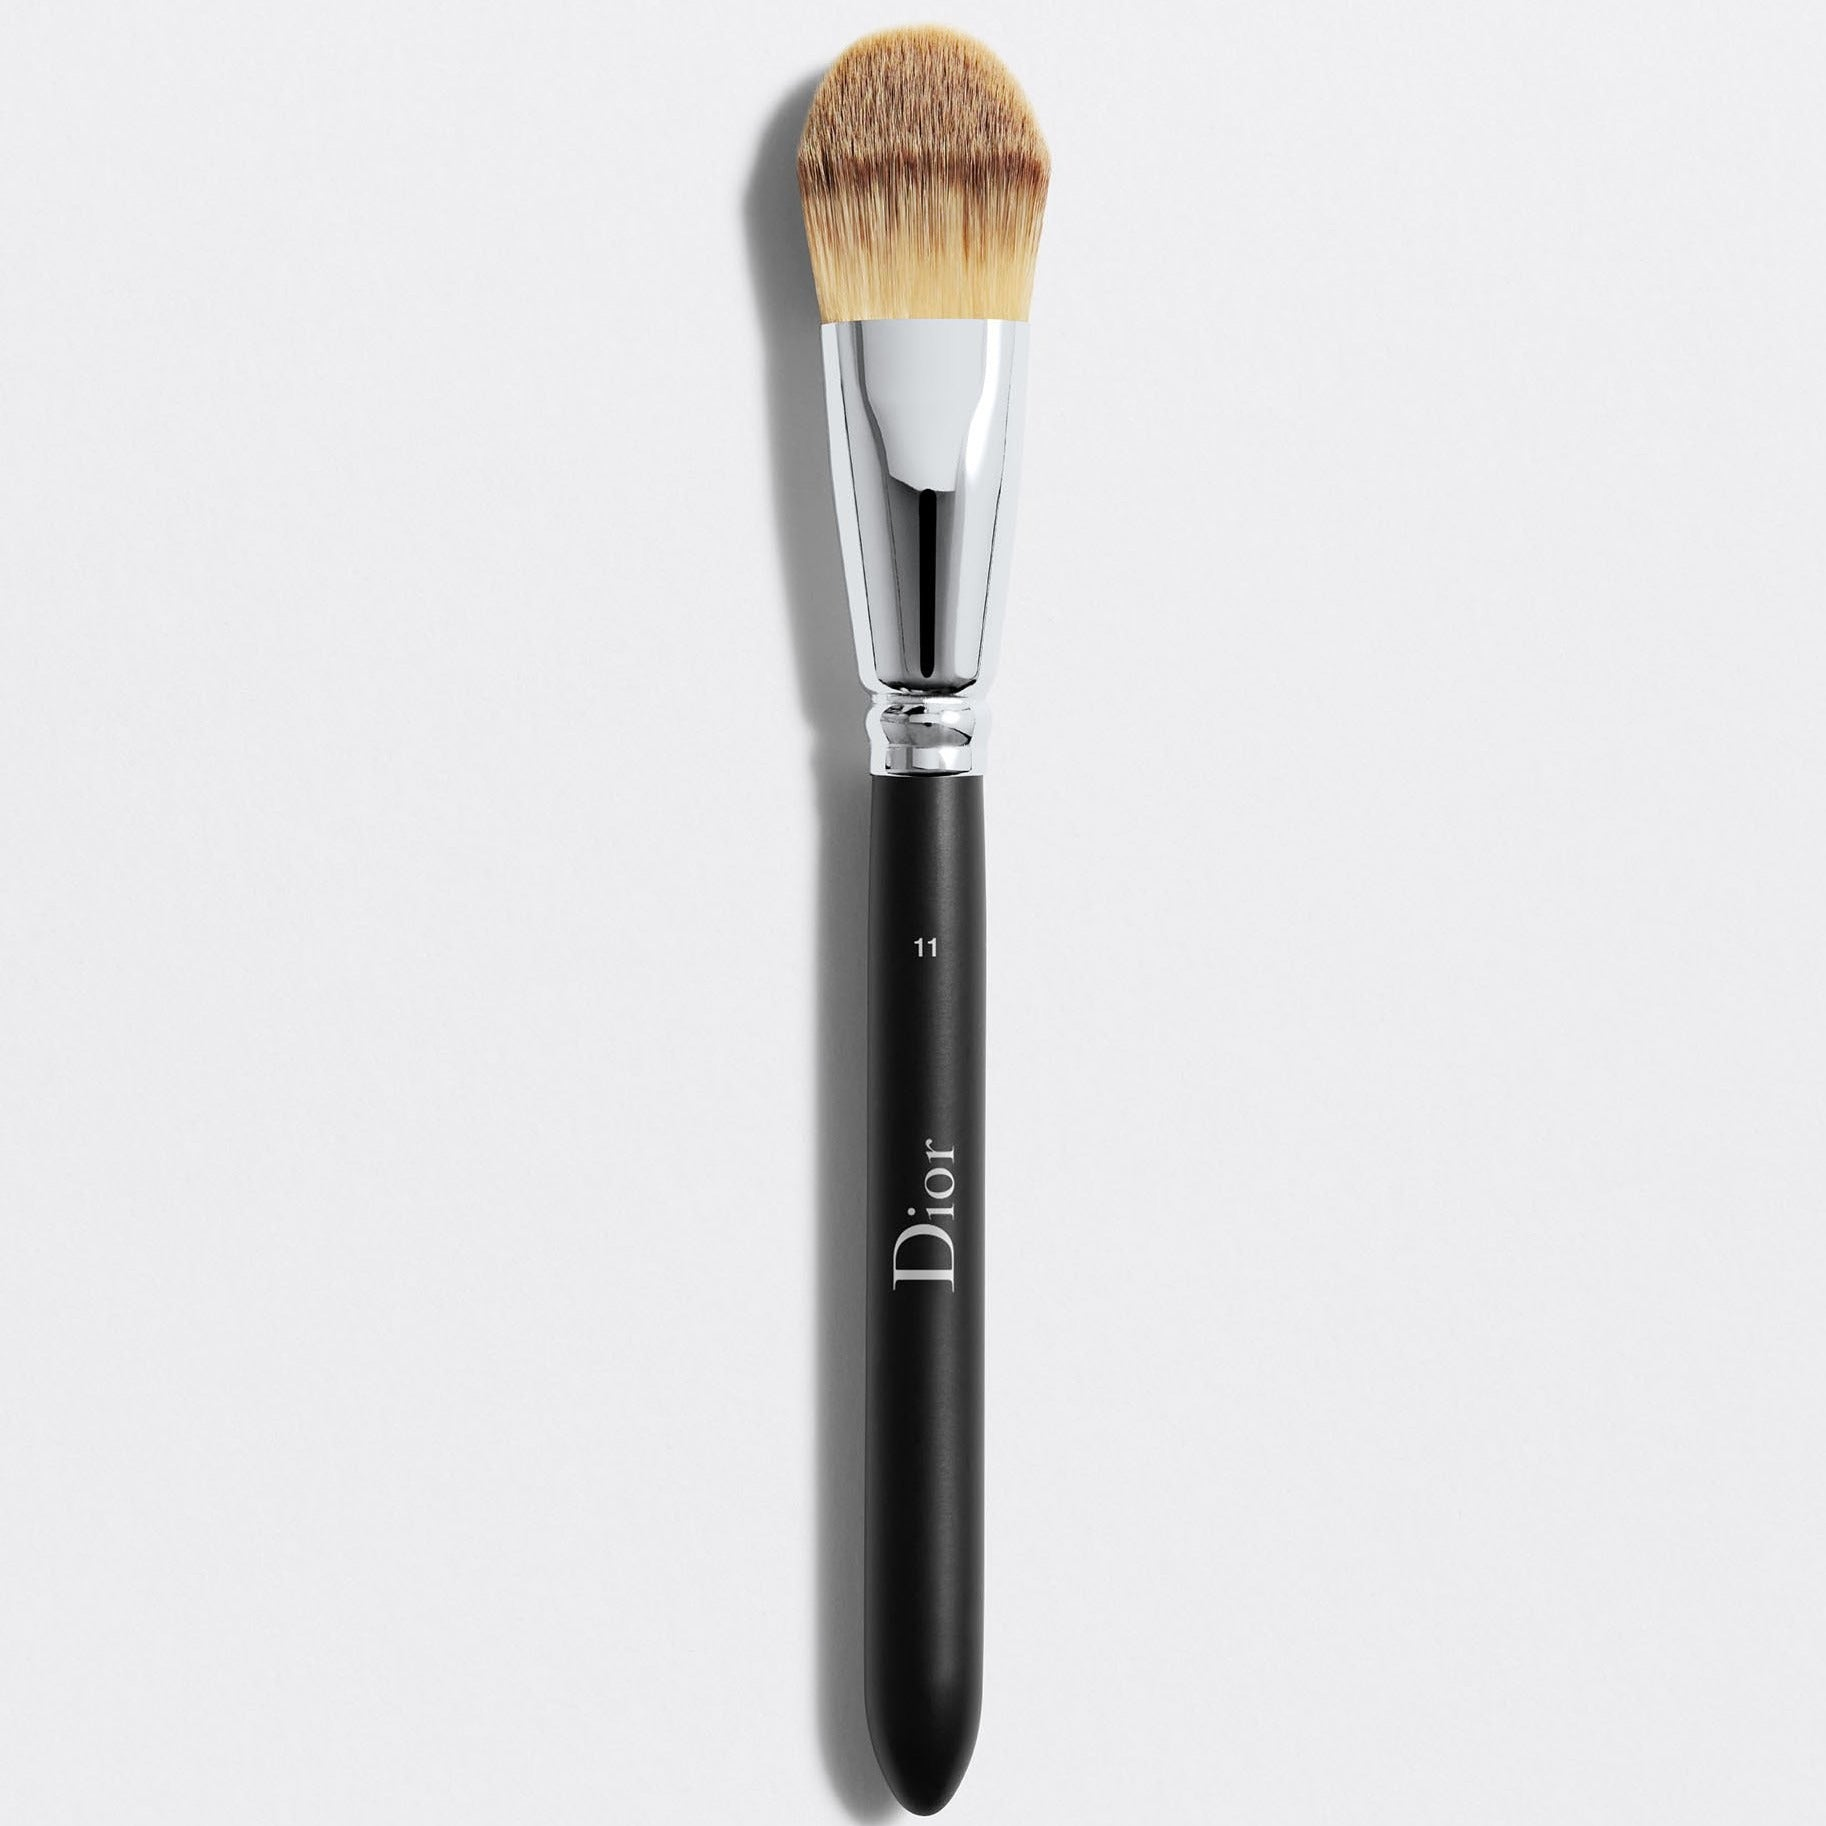 DIOR BACKSTAGE LIGHT COVERAGE FLUID FOUNDATION BRUSH N° 11 | Light coverage fluid foundation brush n° 11